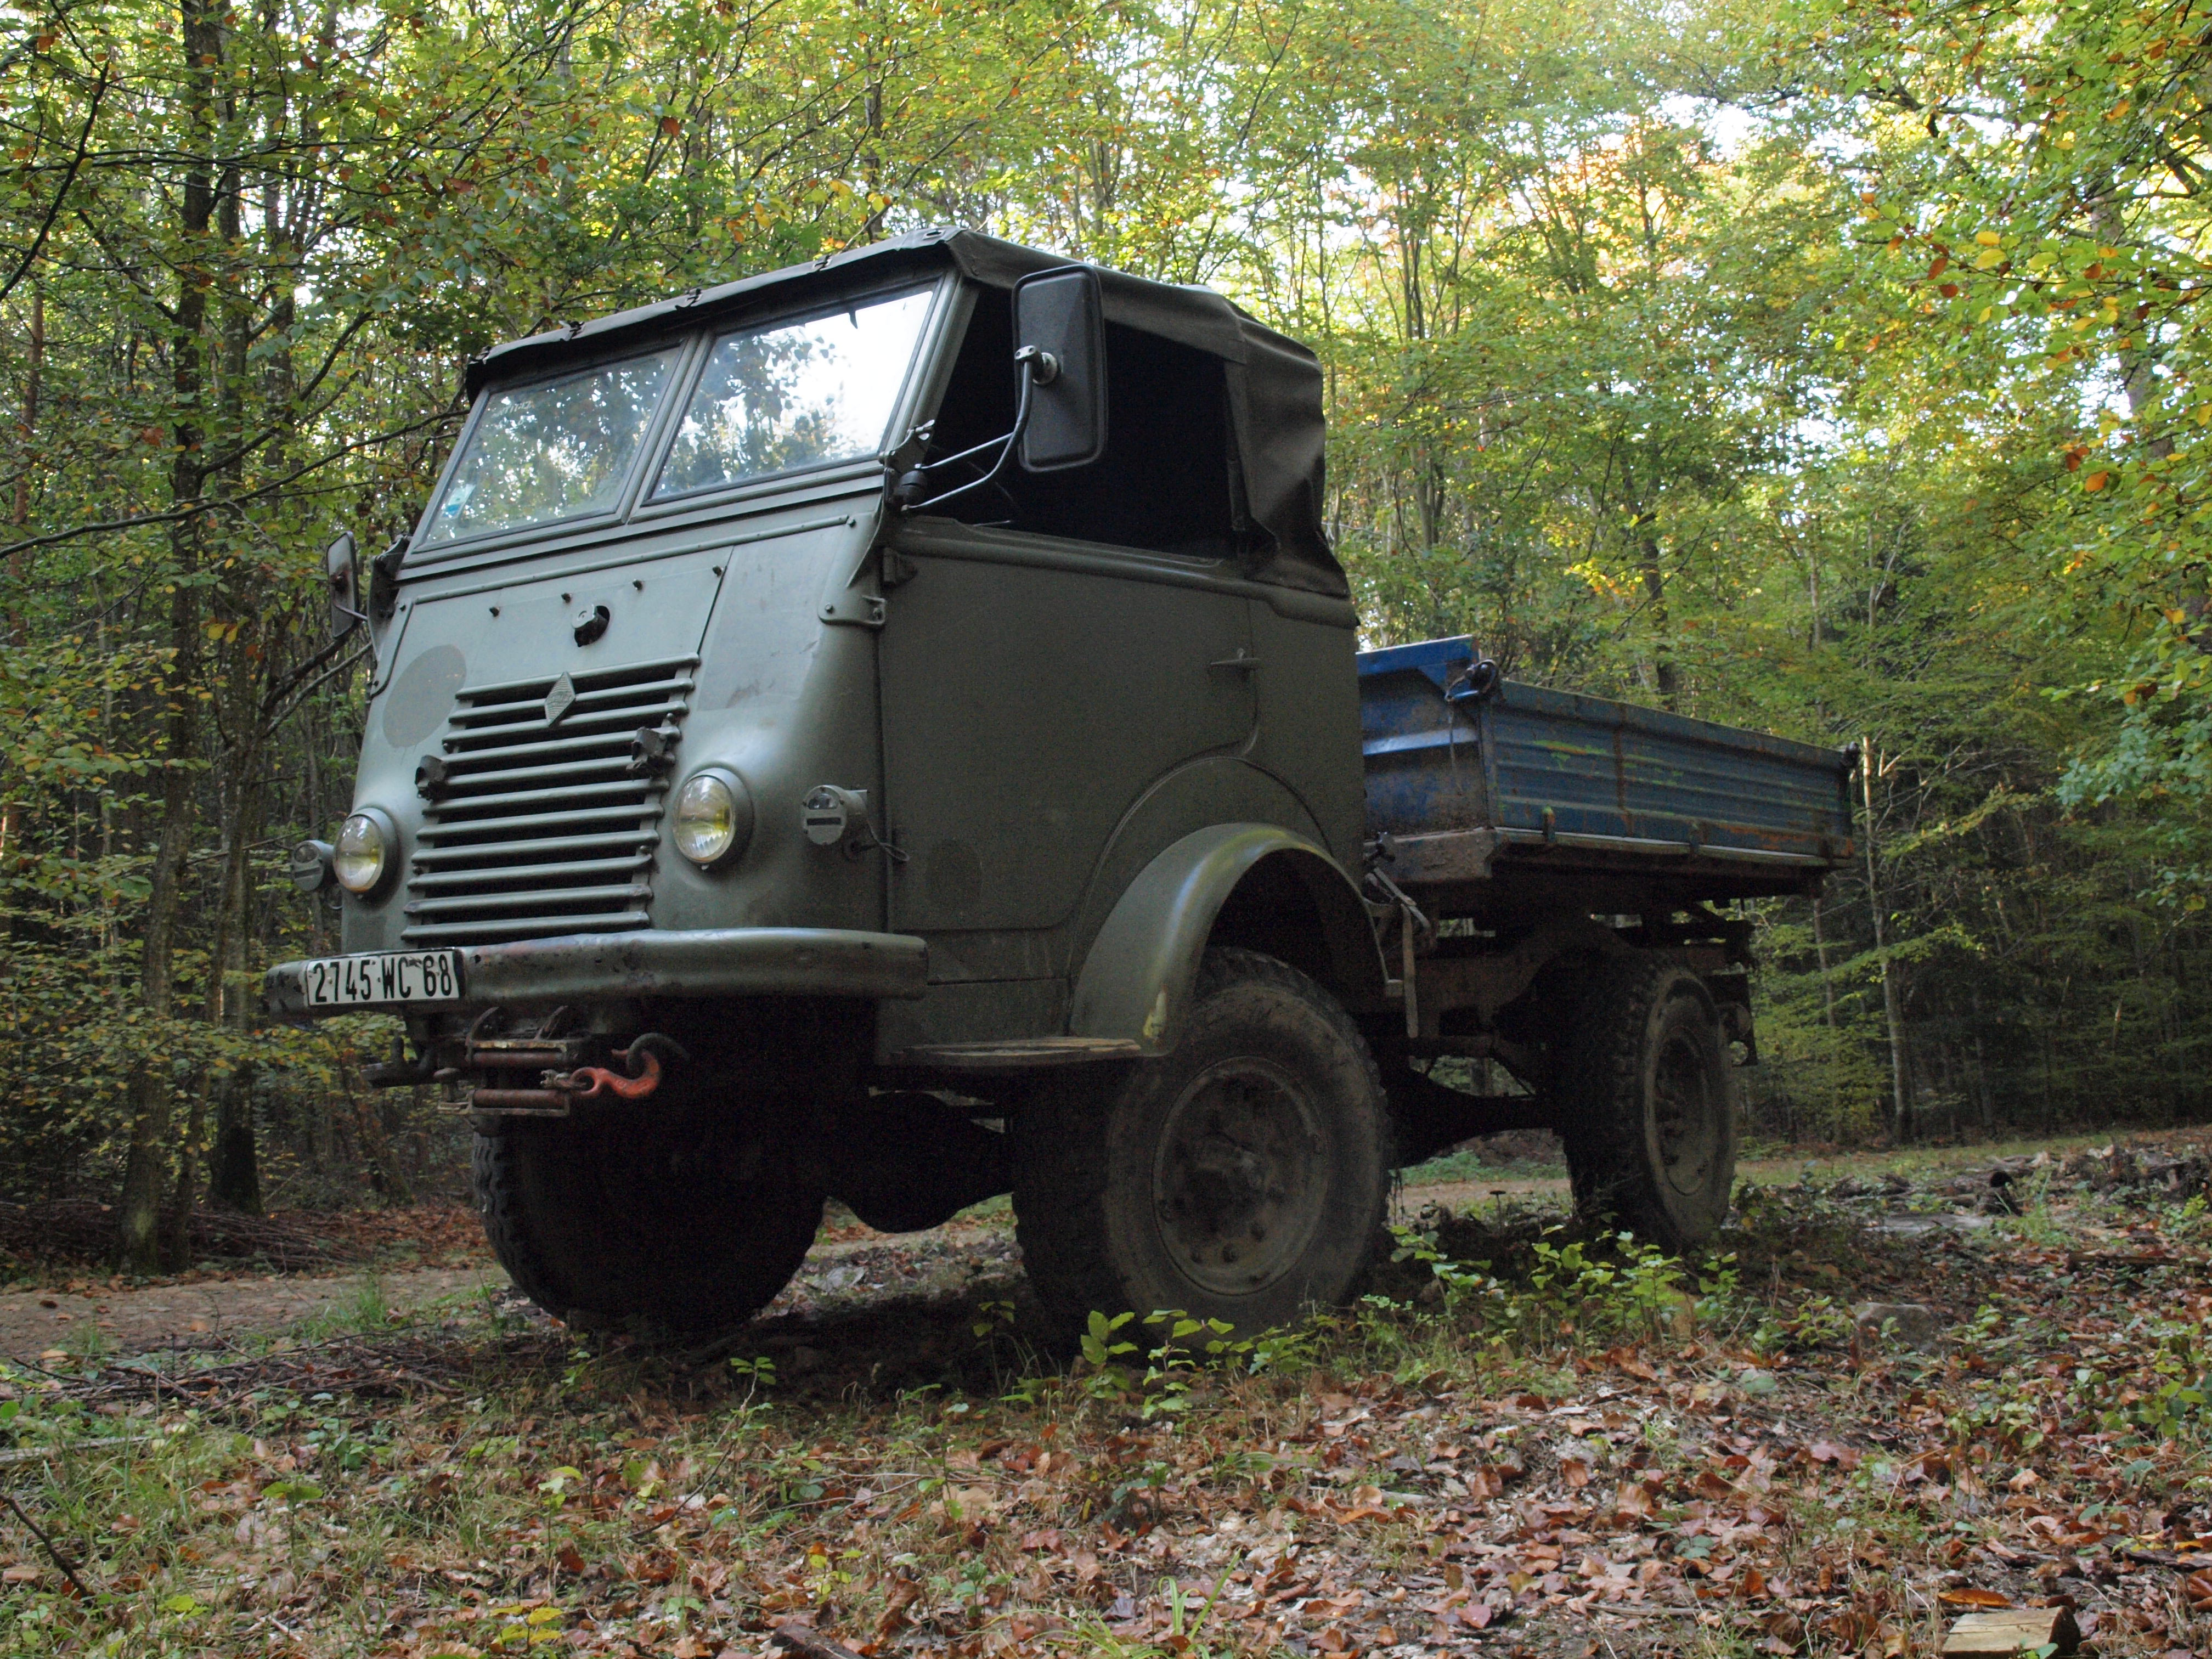 File:Vintage military truck in France.jpg - Wikimedia Commons